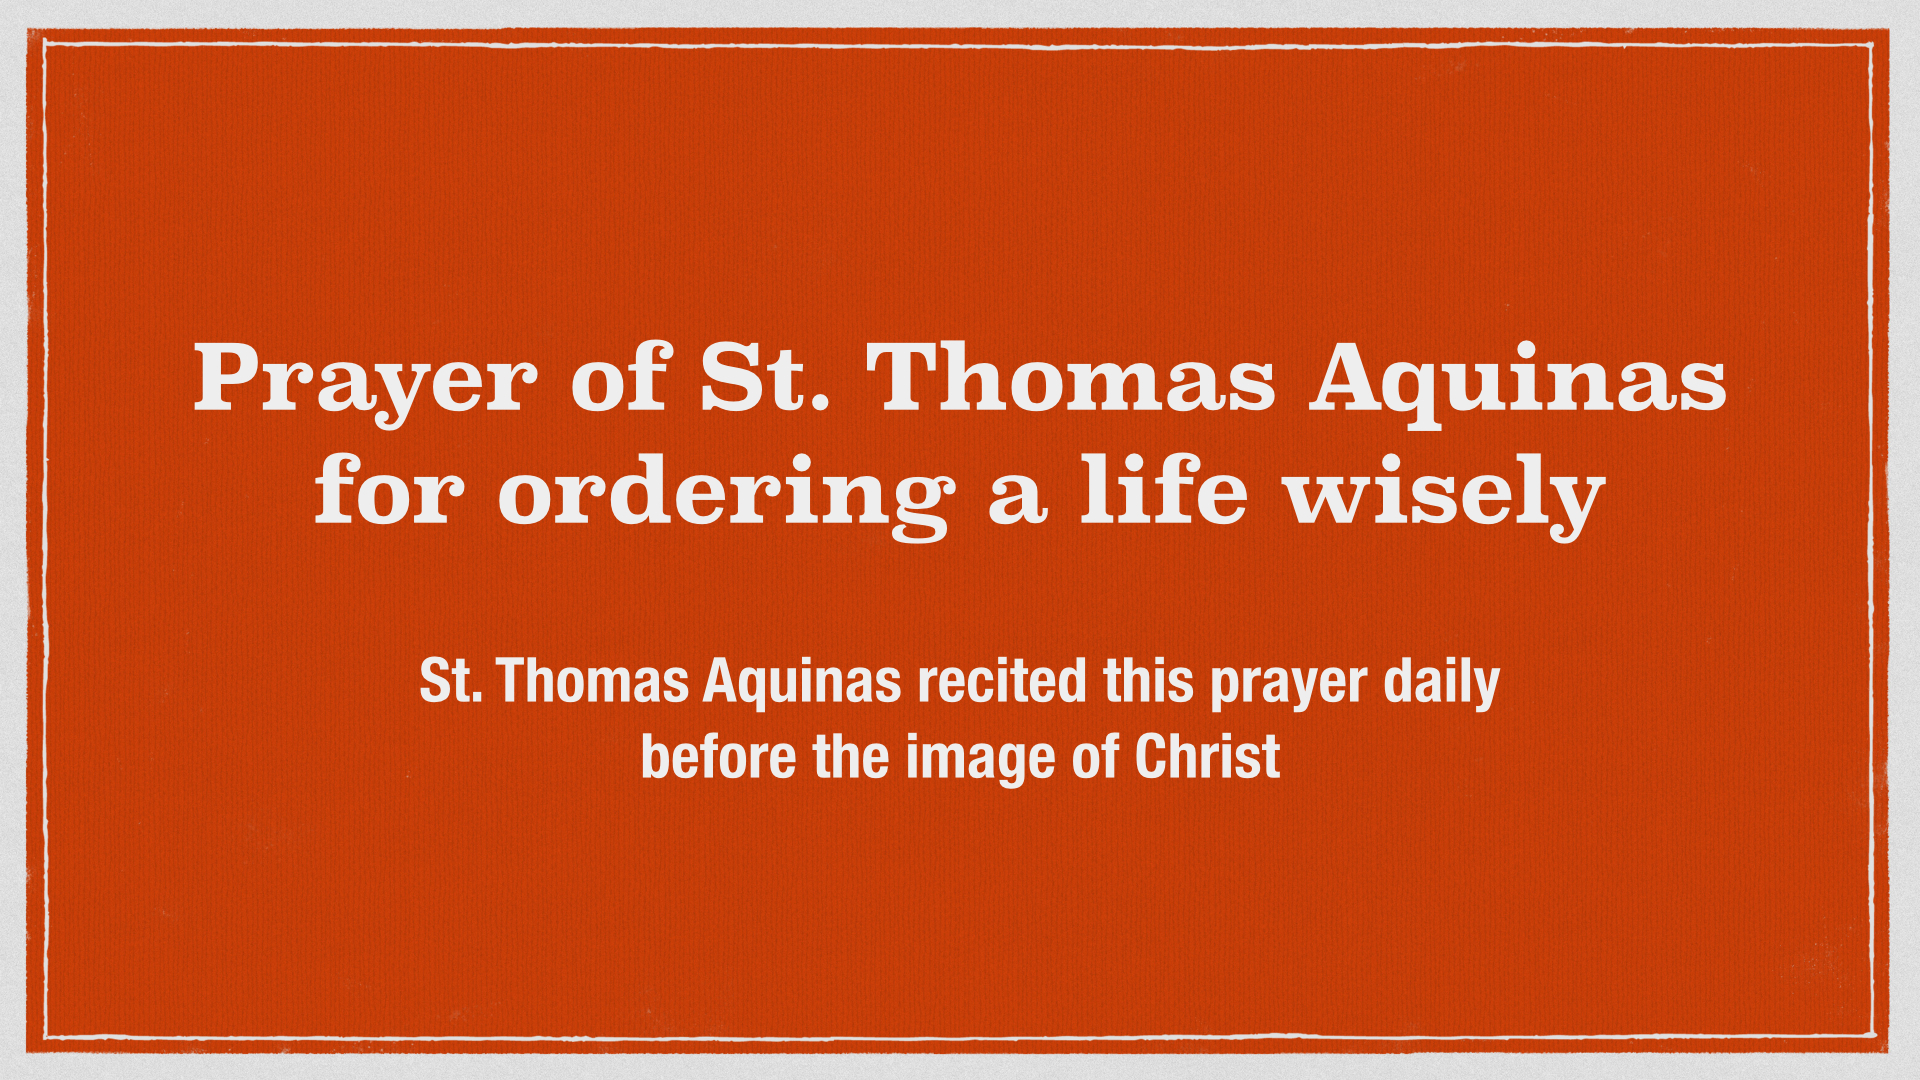 Prayer of St. Thomas Aquinas for ordering life wisely.001.jpg